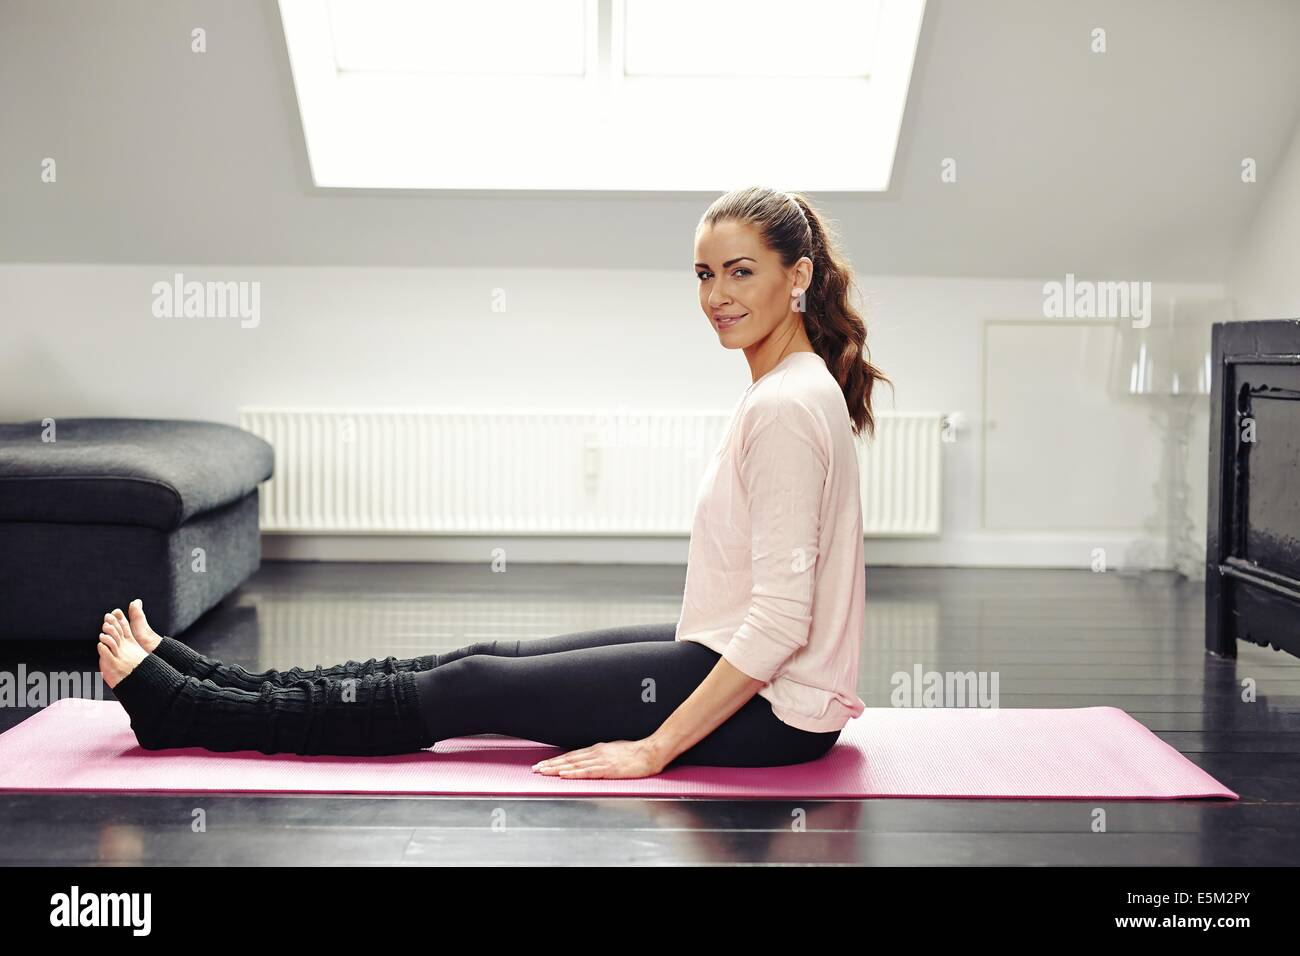 Portrait of fresh young woman sitting on exercise mat looking at camera smiling. Beautiful female exercising in Stock Photo